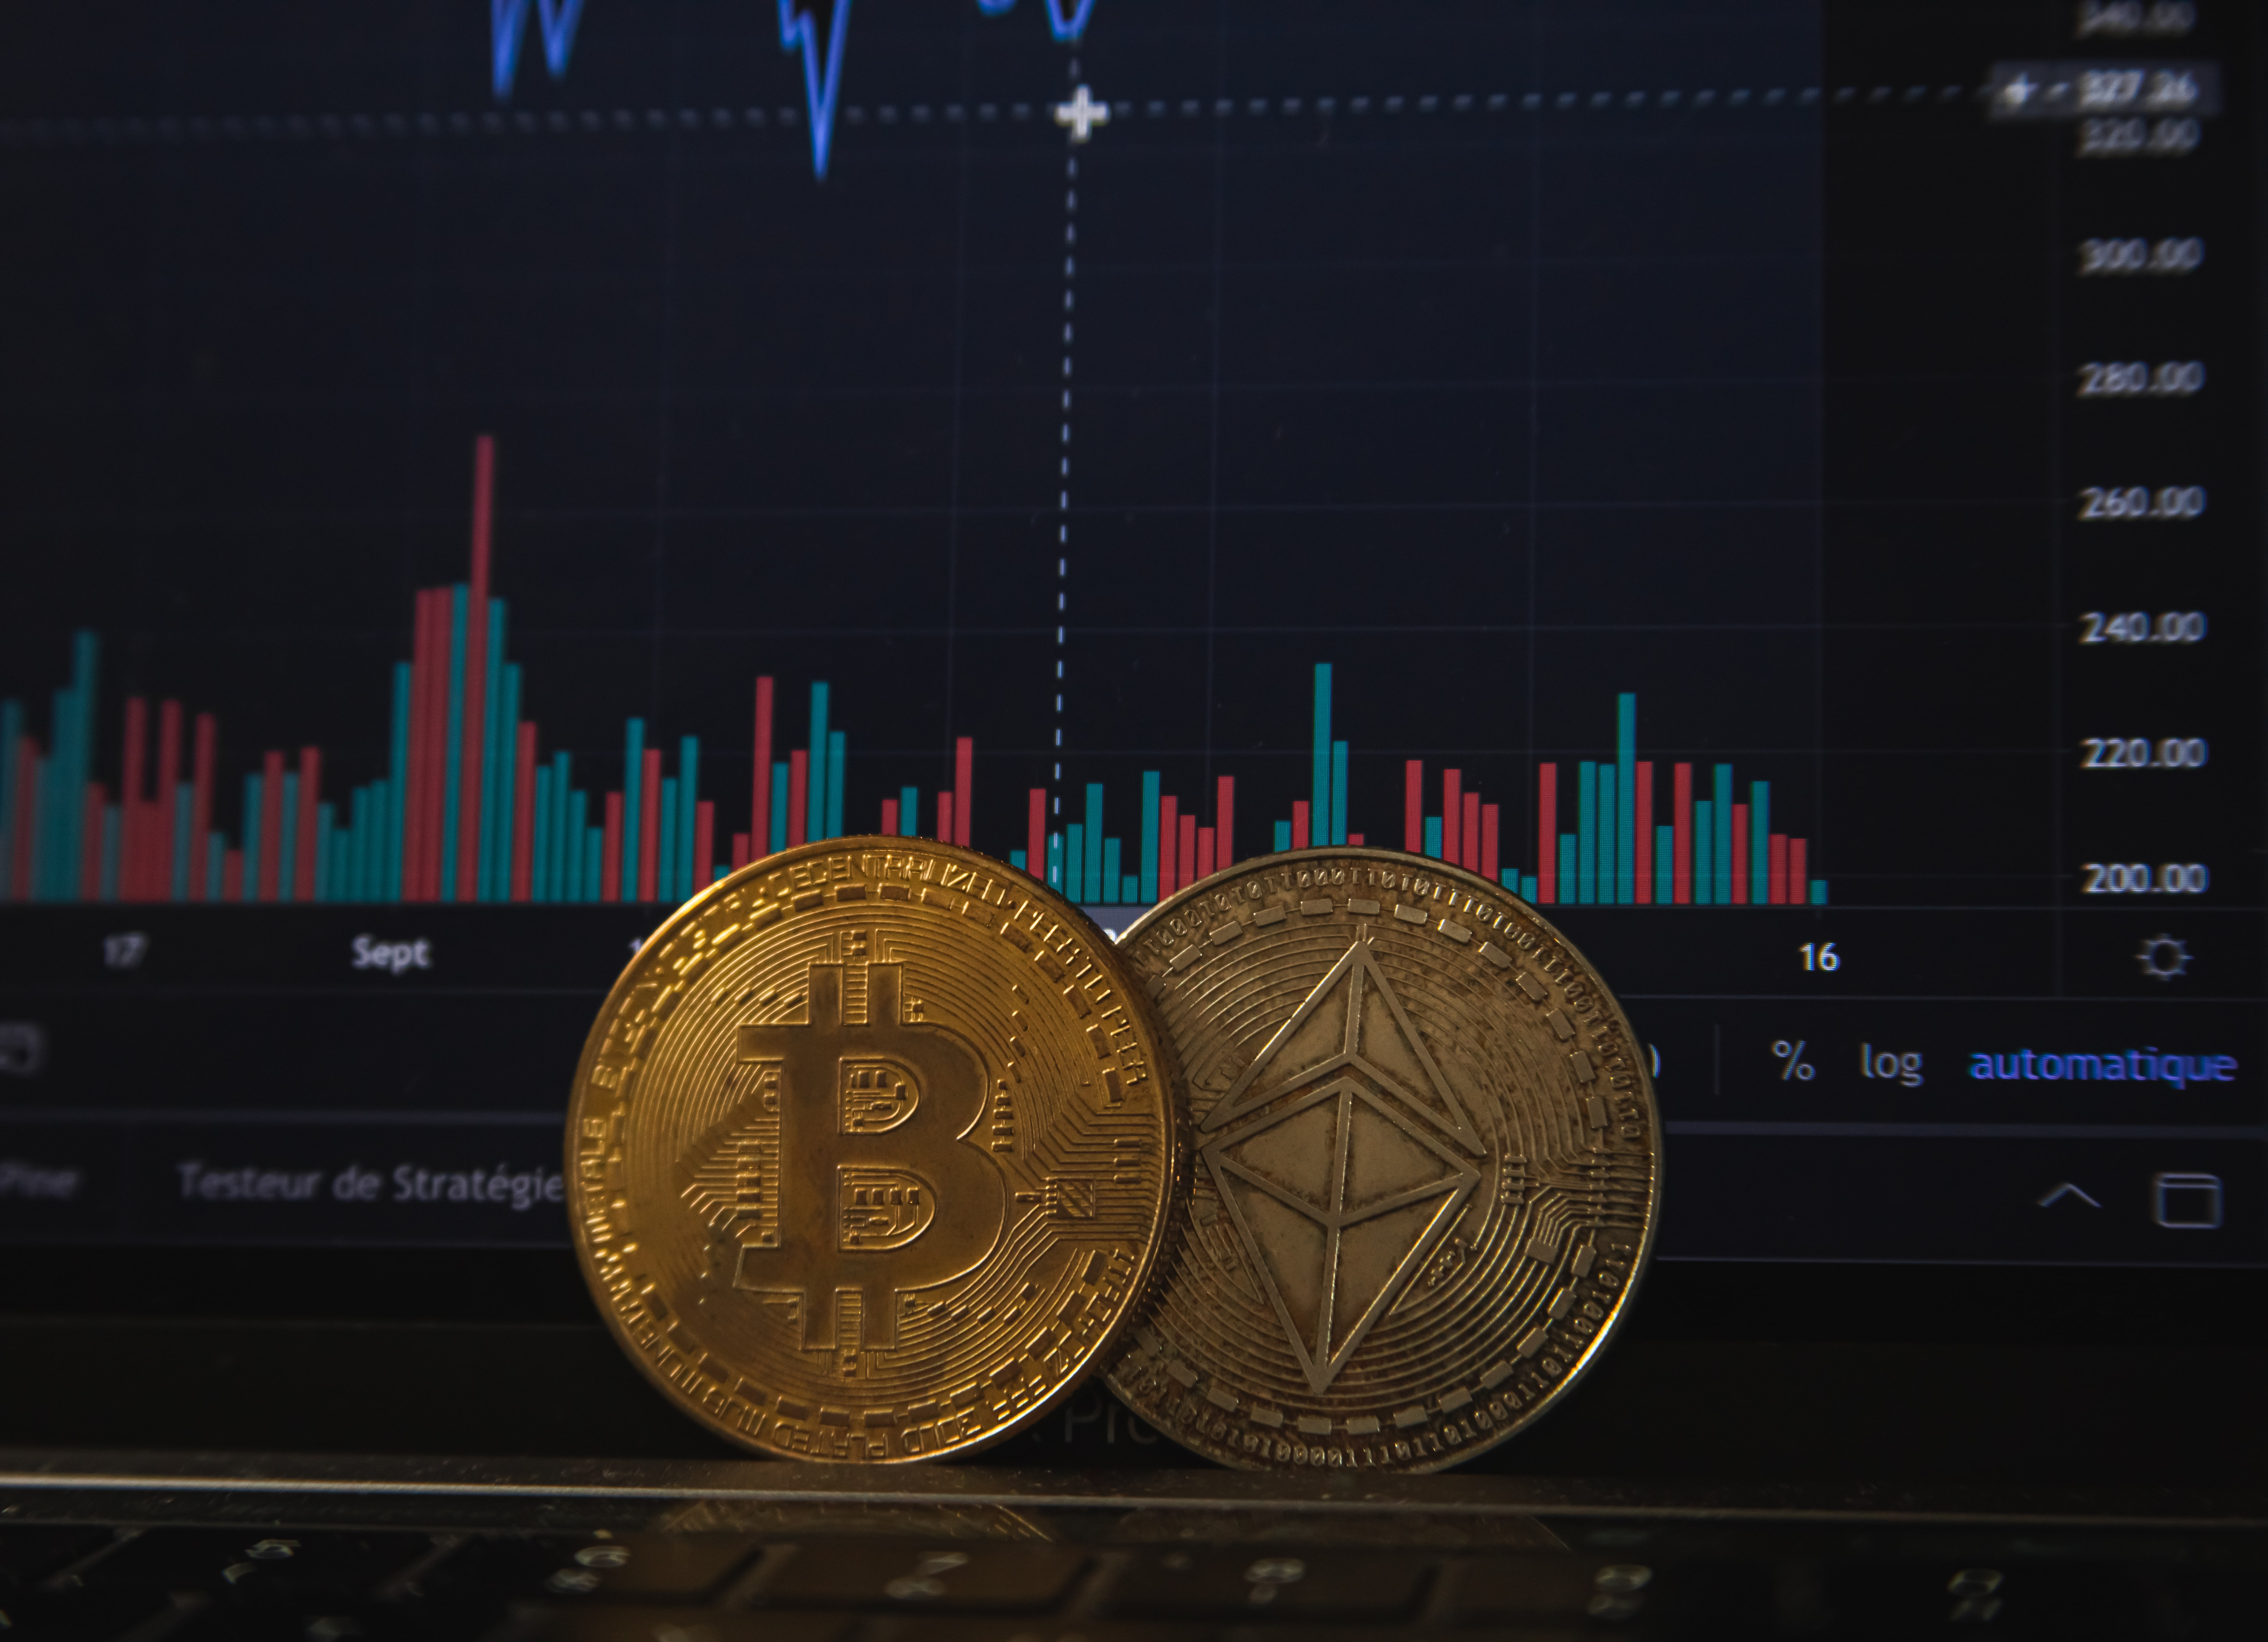 Mid-Cap Altcoins Crushed Bitcoin And Ethereum In August